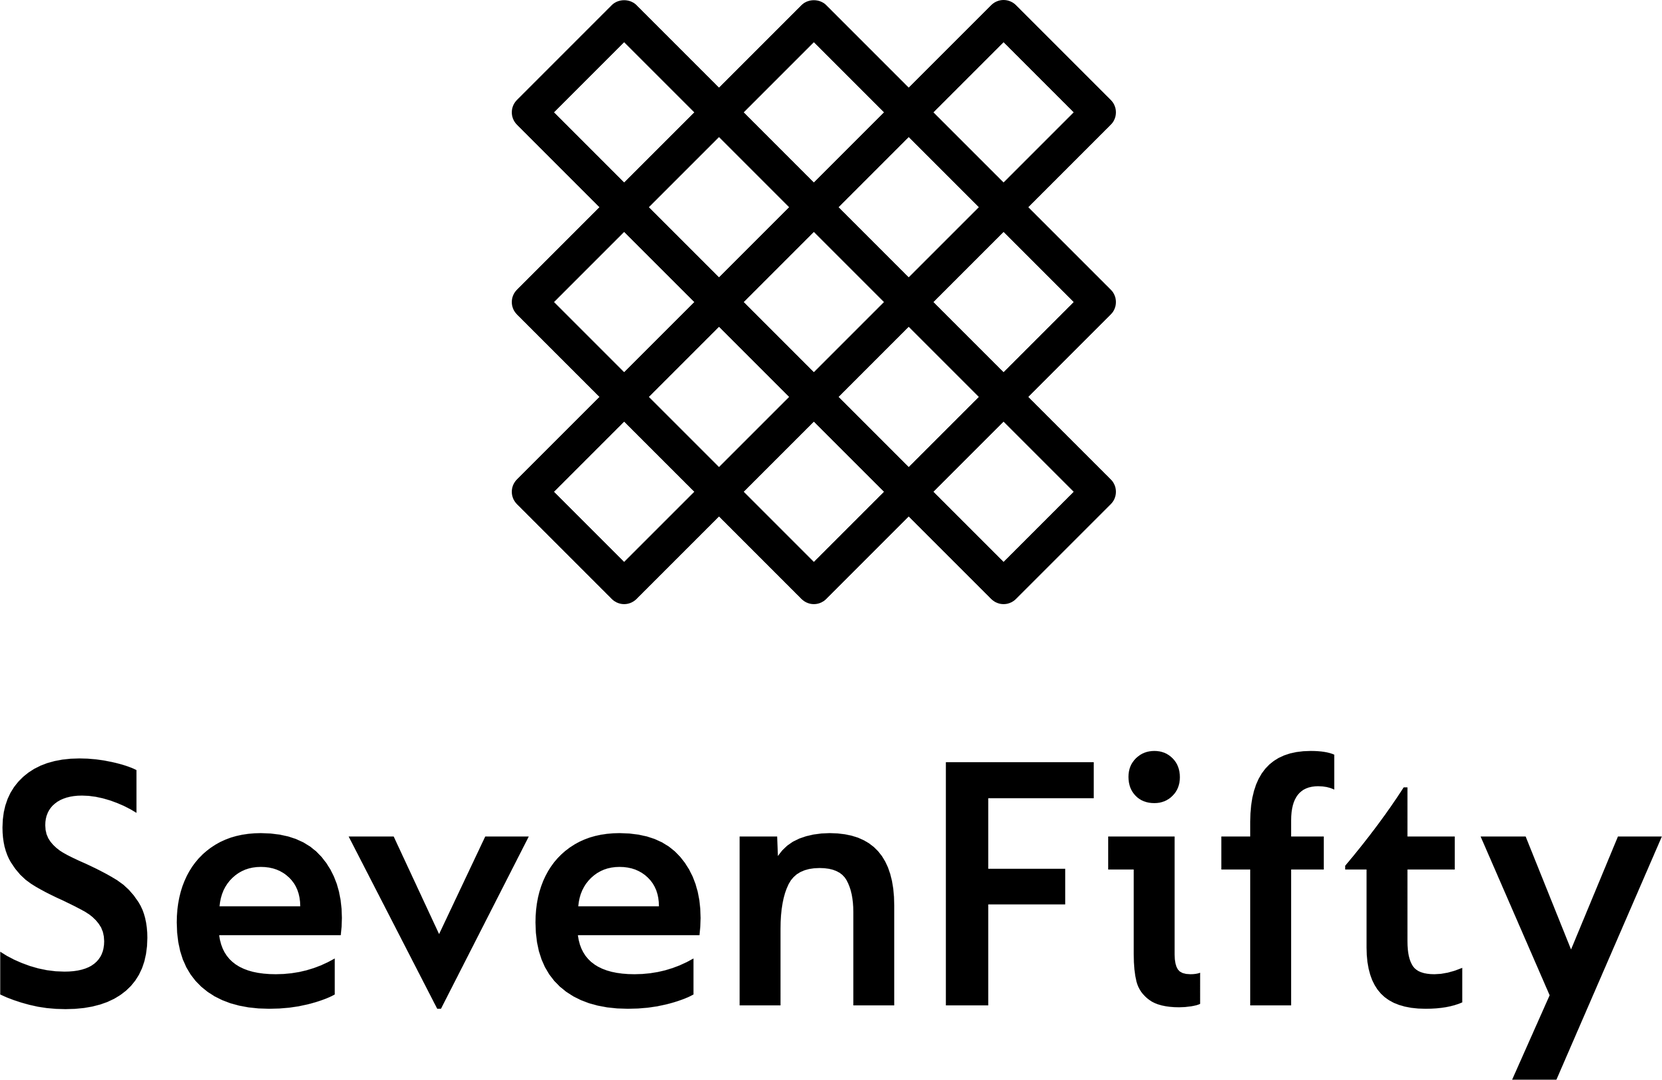 SevenFifty Technologies